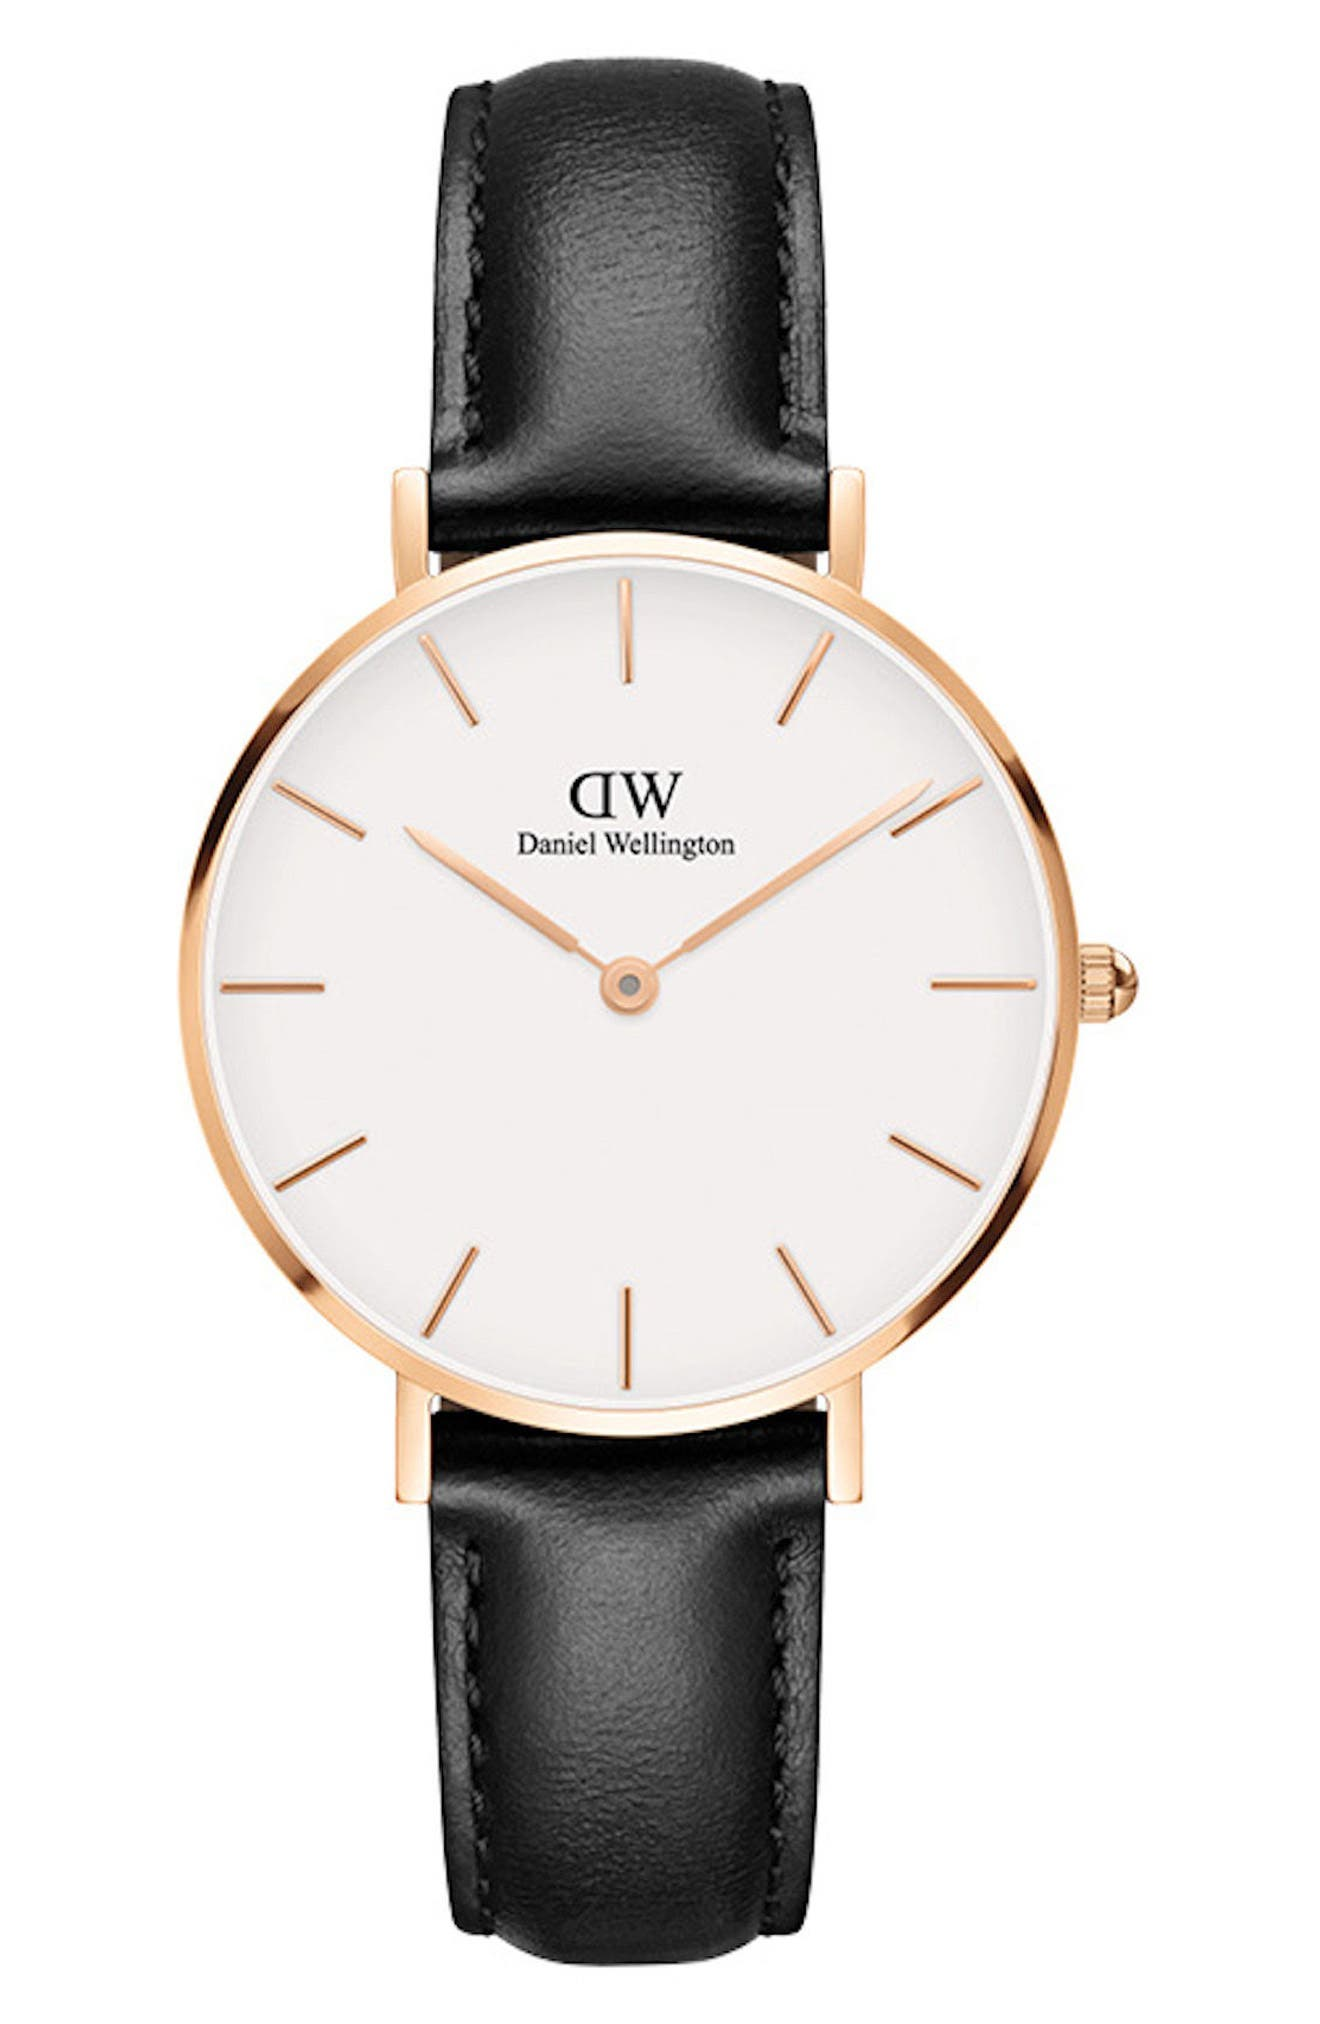 DANIEL WELLINGTON Classic Petite Leather Strap Watch, 32Mm in Black/ White/ Rose Gold